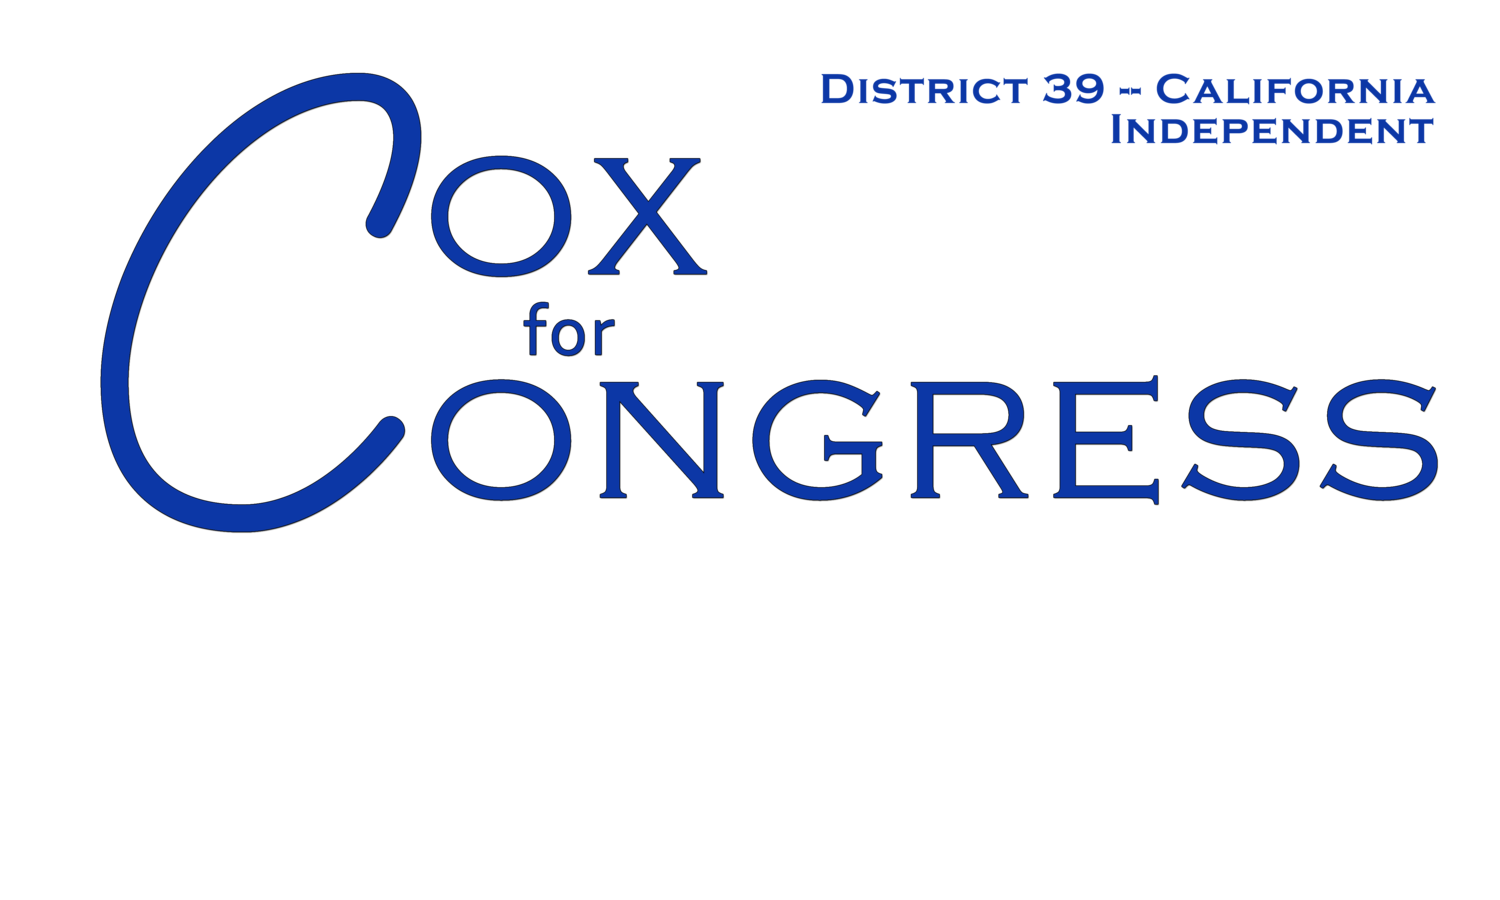 Cox for Congress